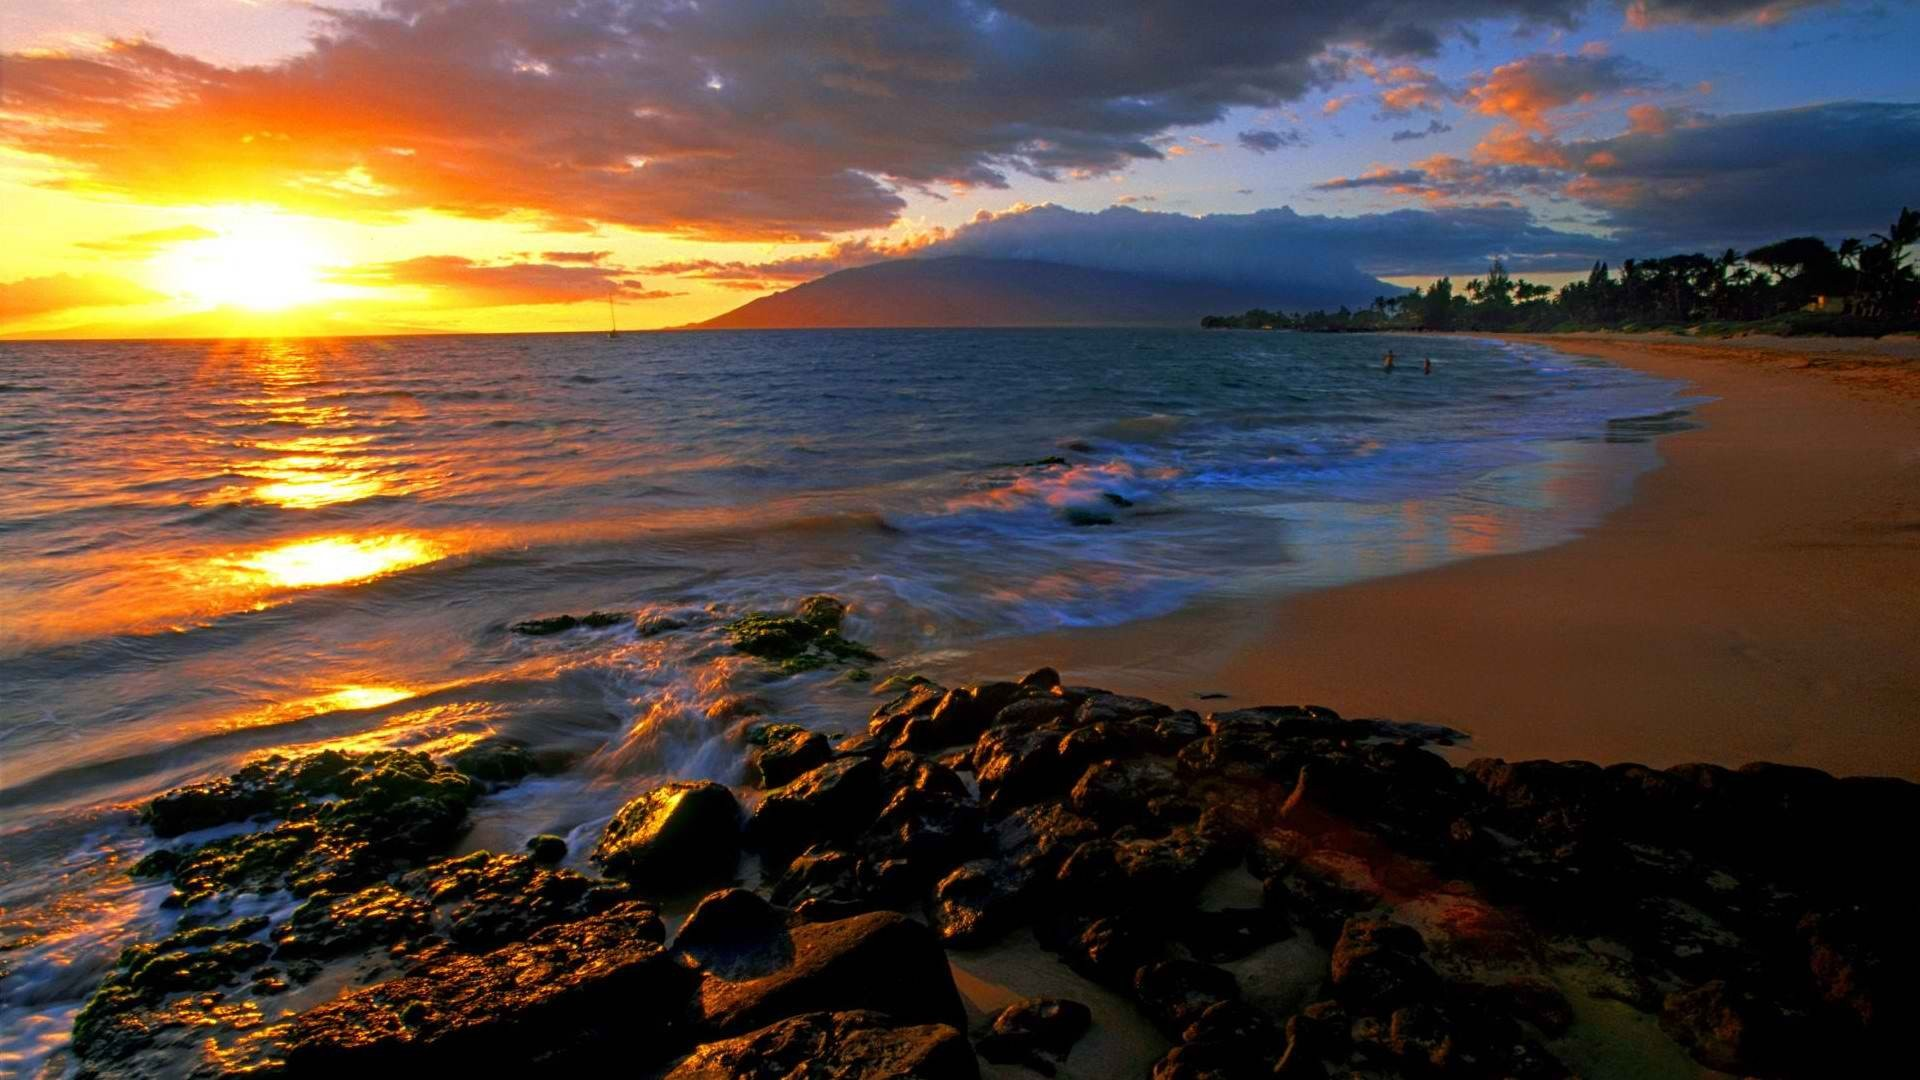 hawaii sunset wallpaper (54+ pictures)